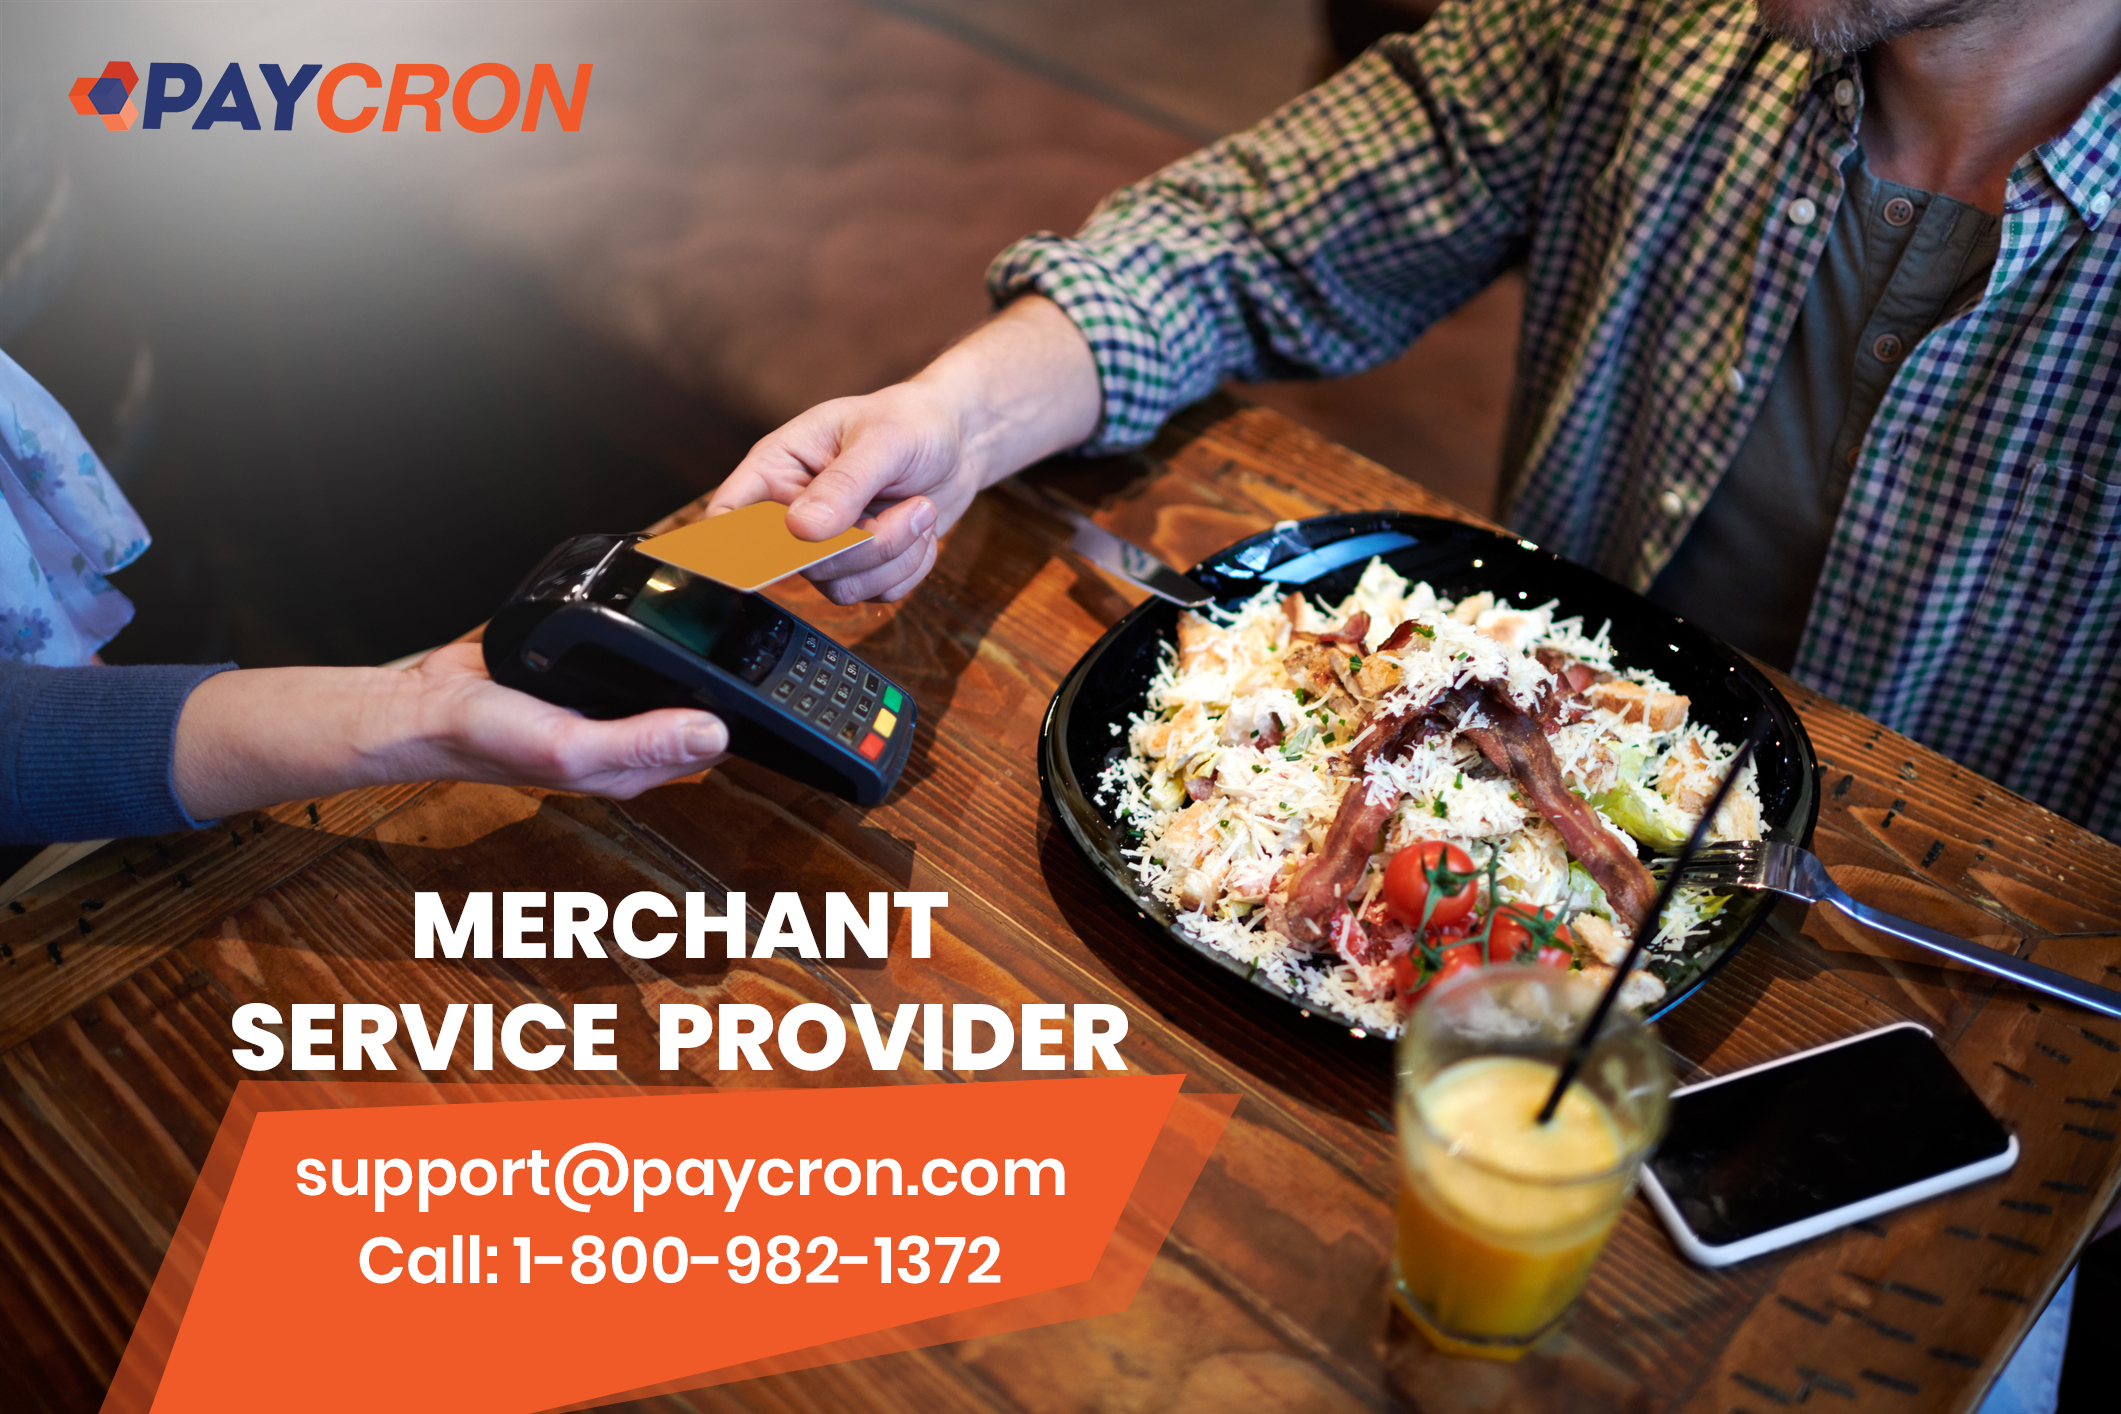 Merchant services for small business- 8009821372